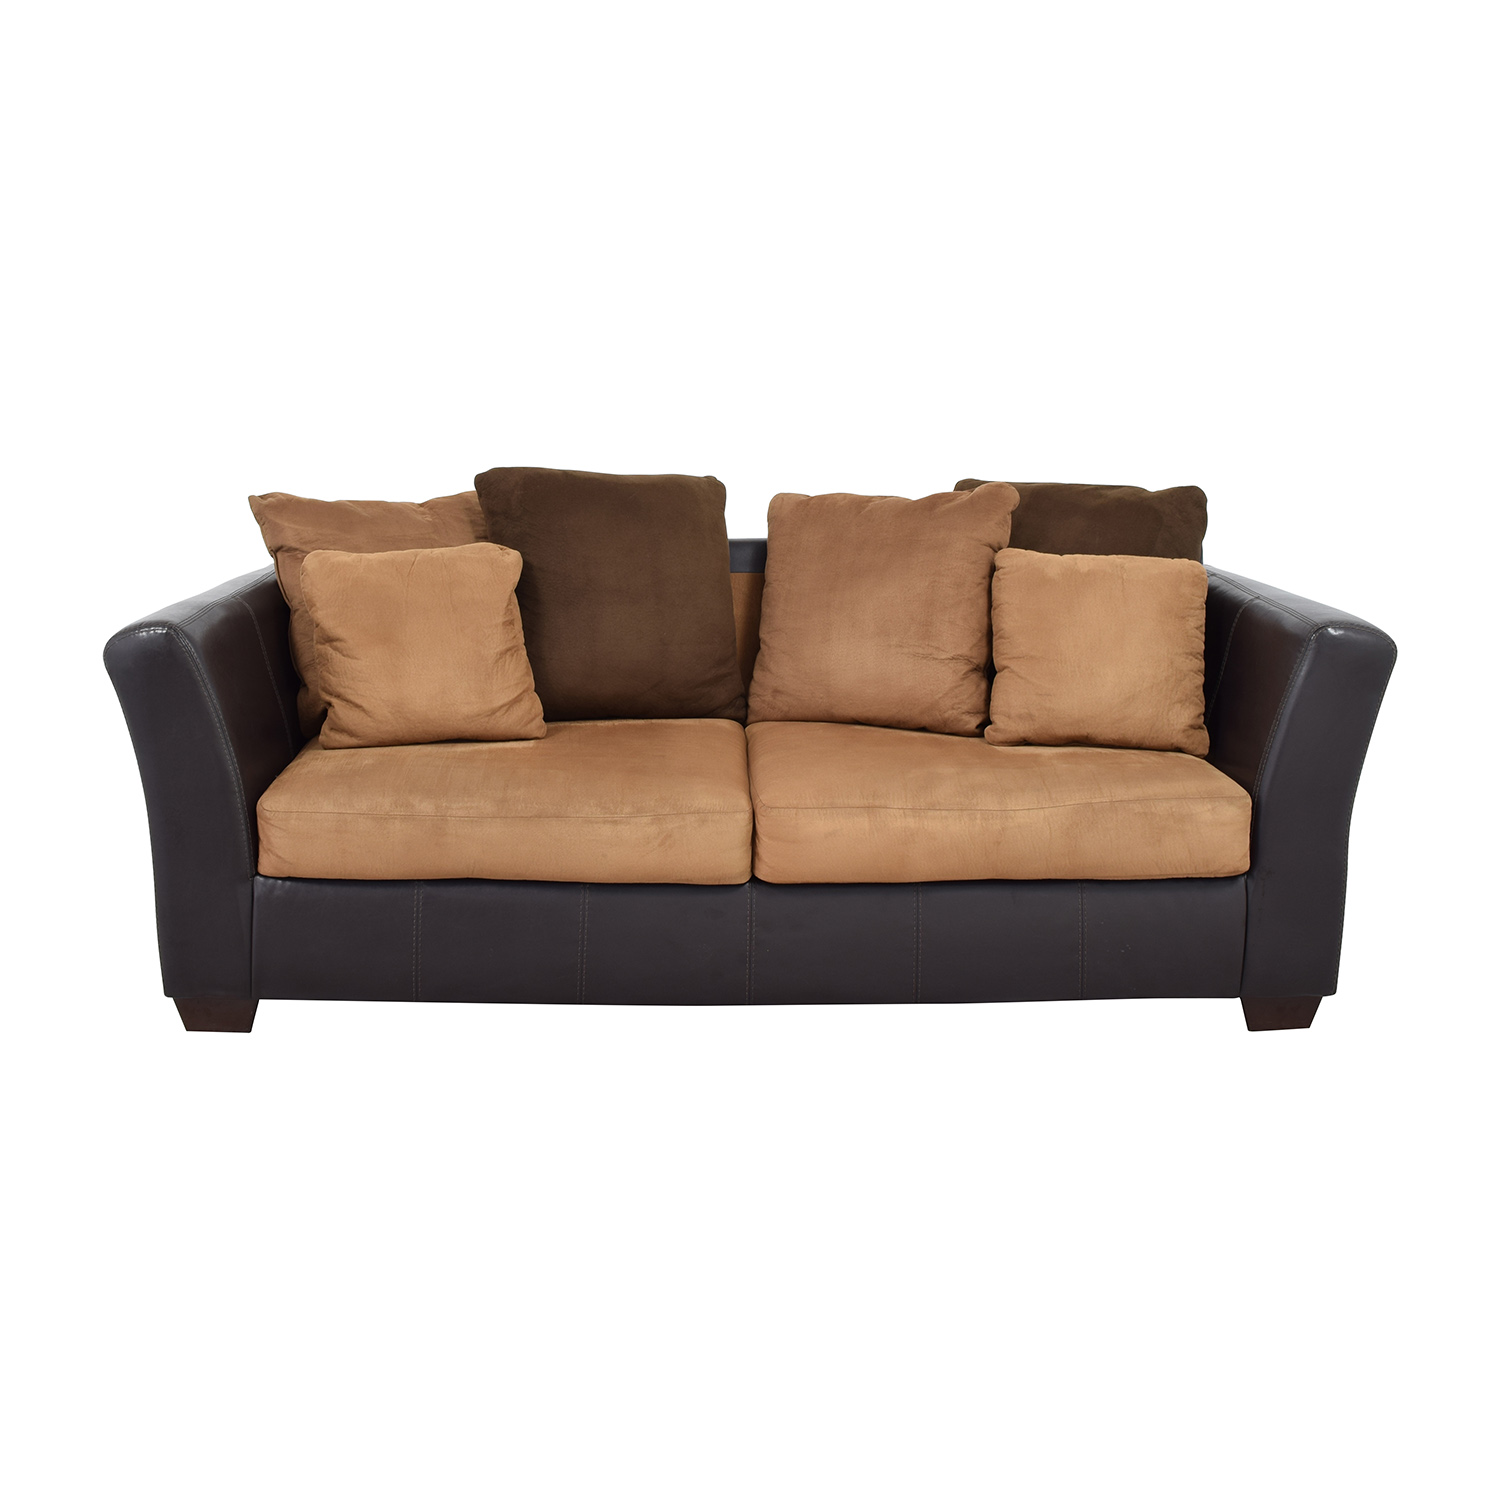 Ashley Furniture Sofa with Brown Throw Pillows / Sofas